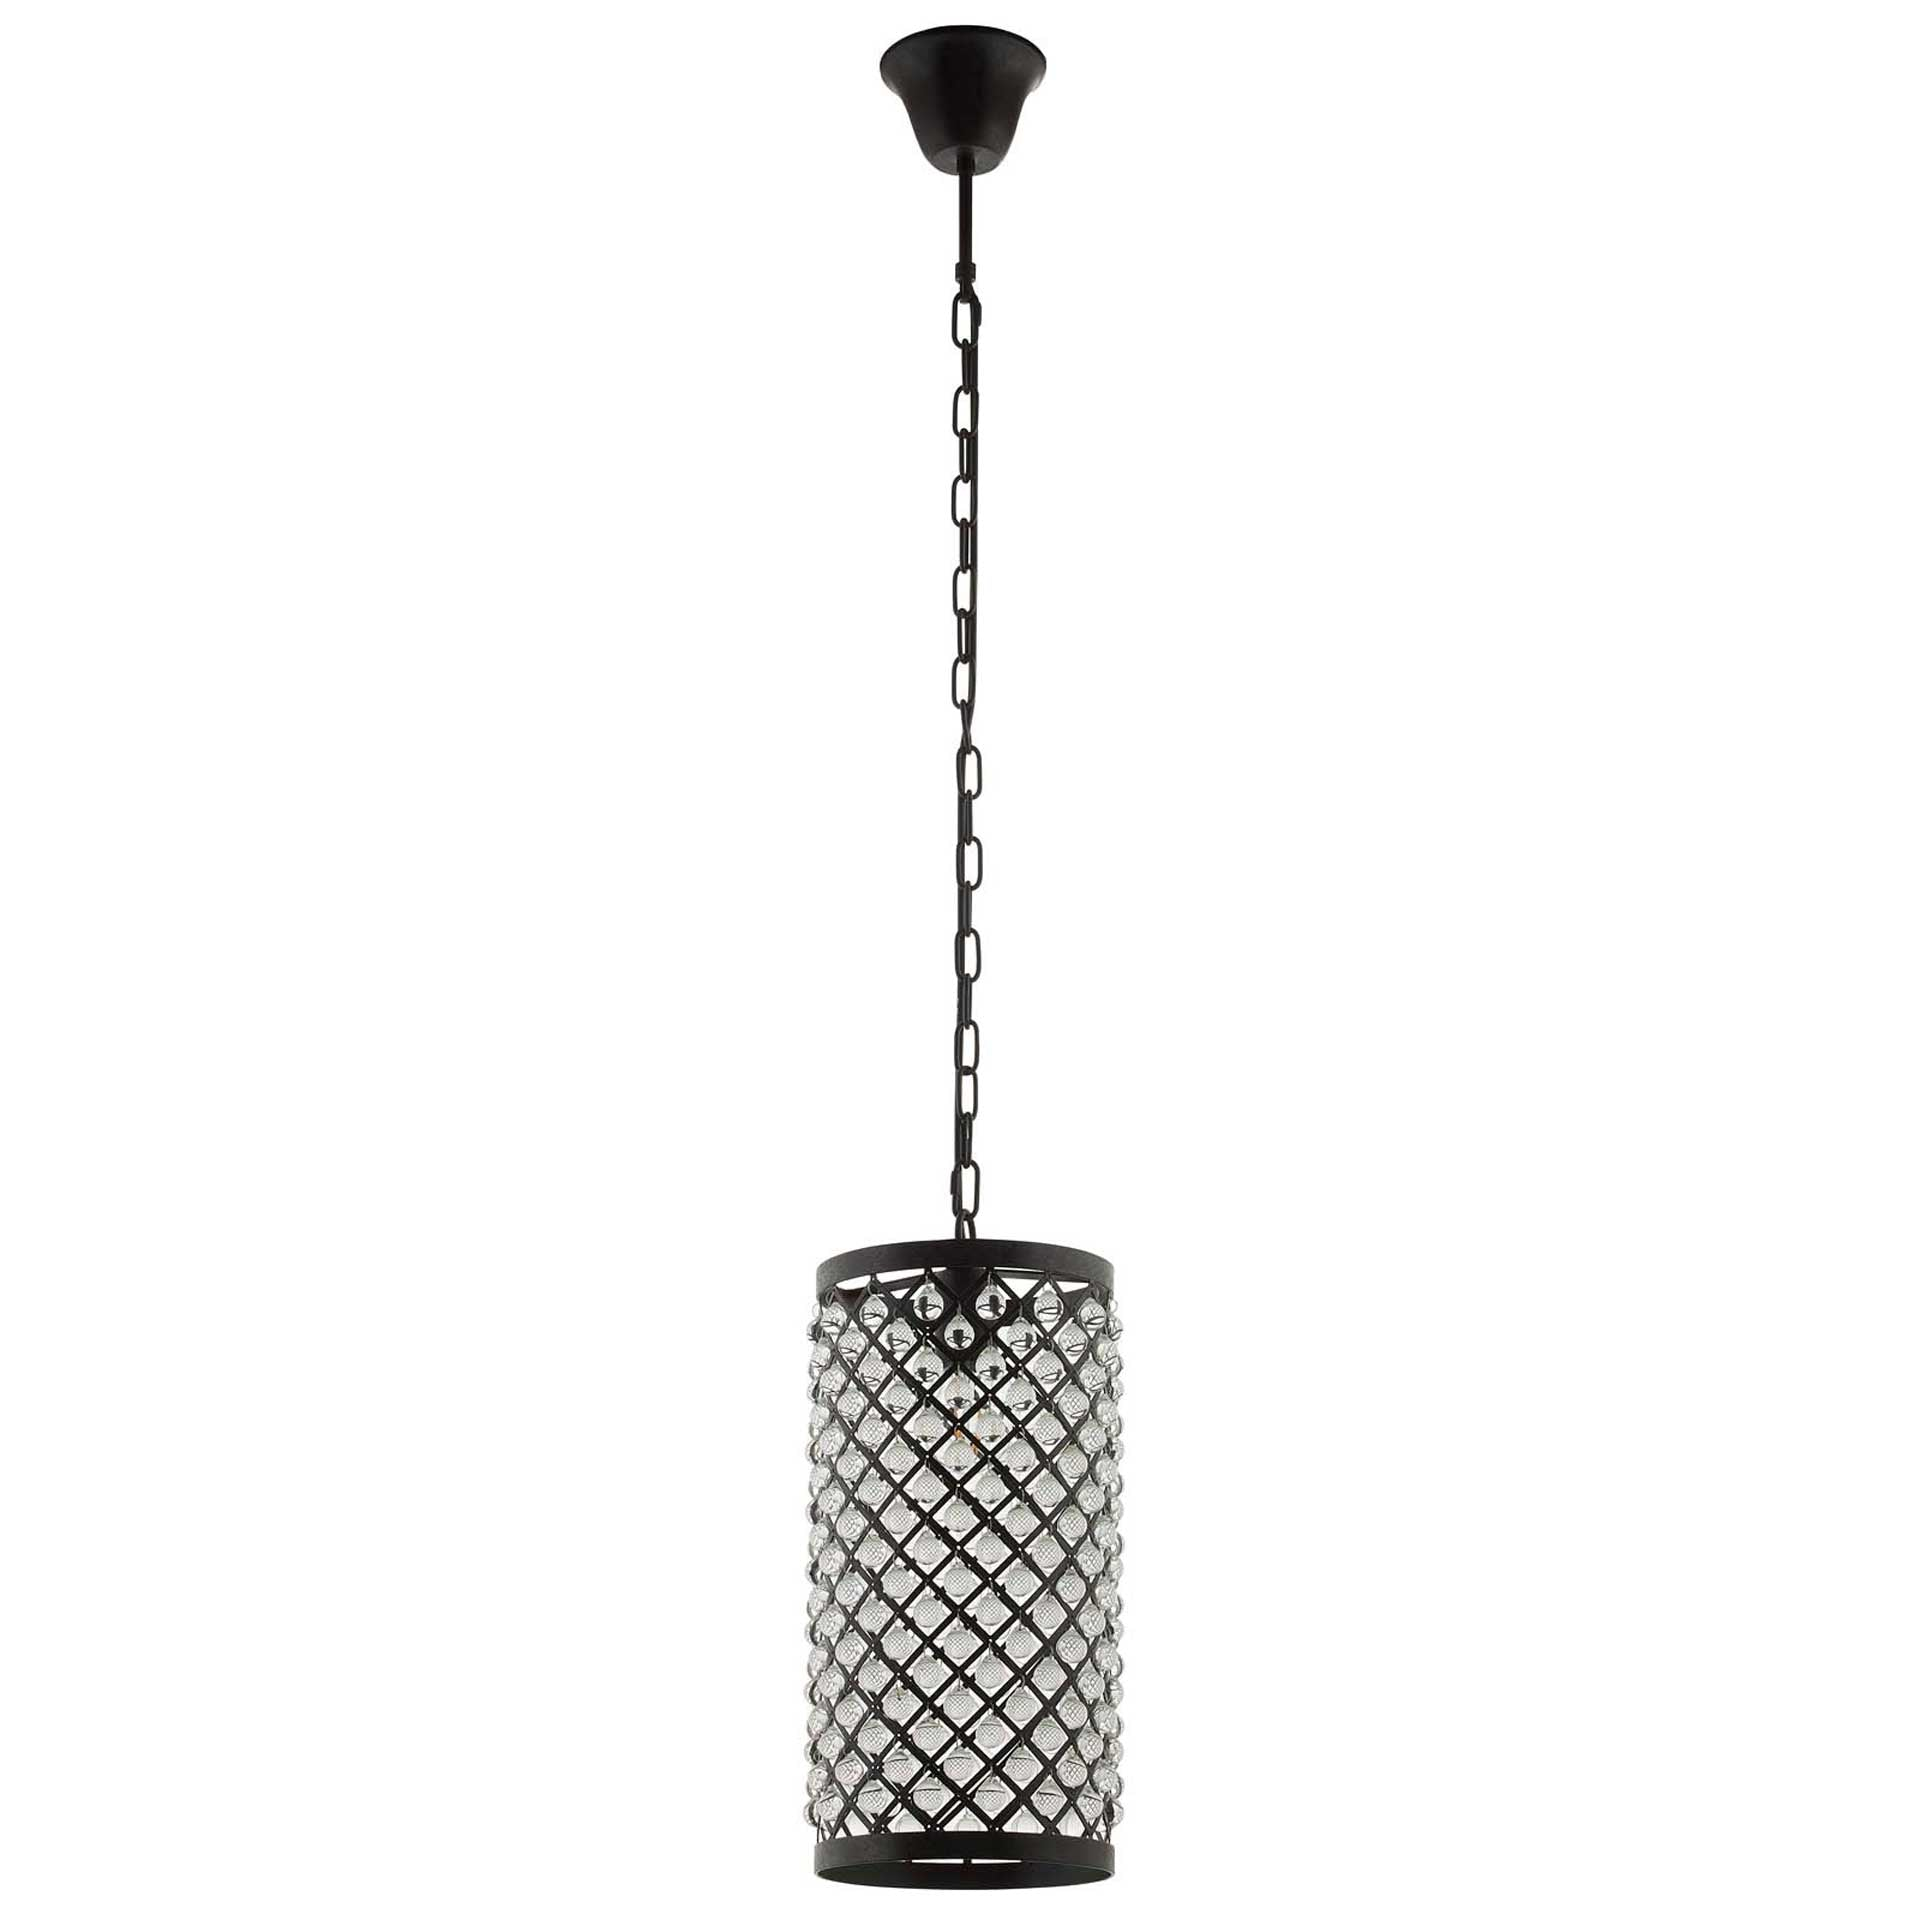 Remington Glass and Metal Pendant Chandelier Black